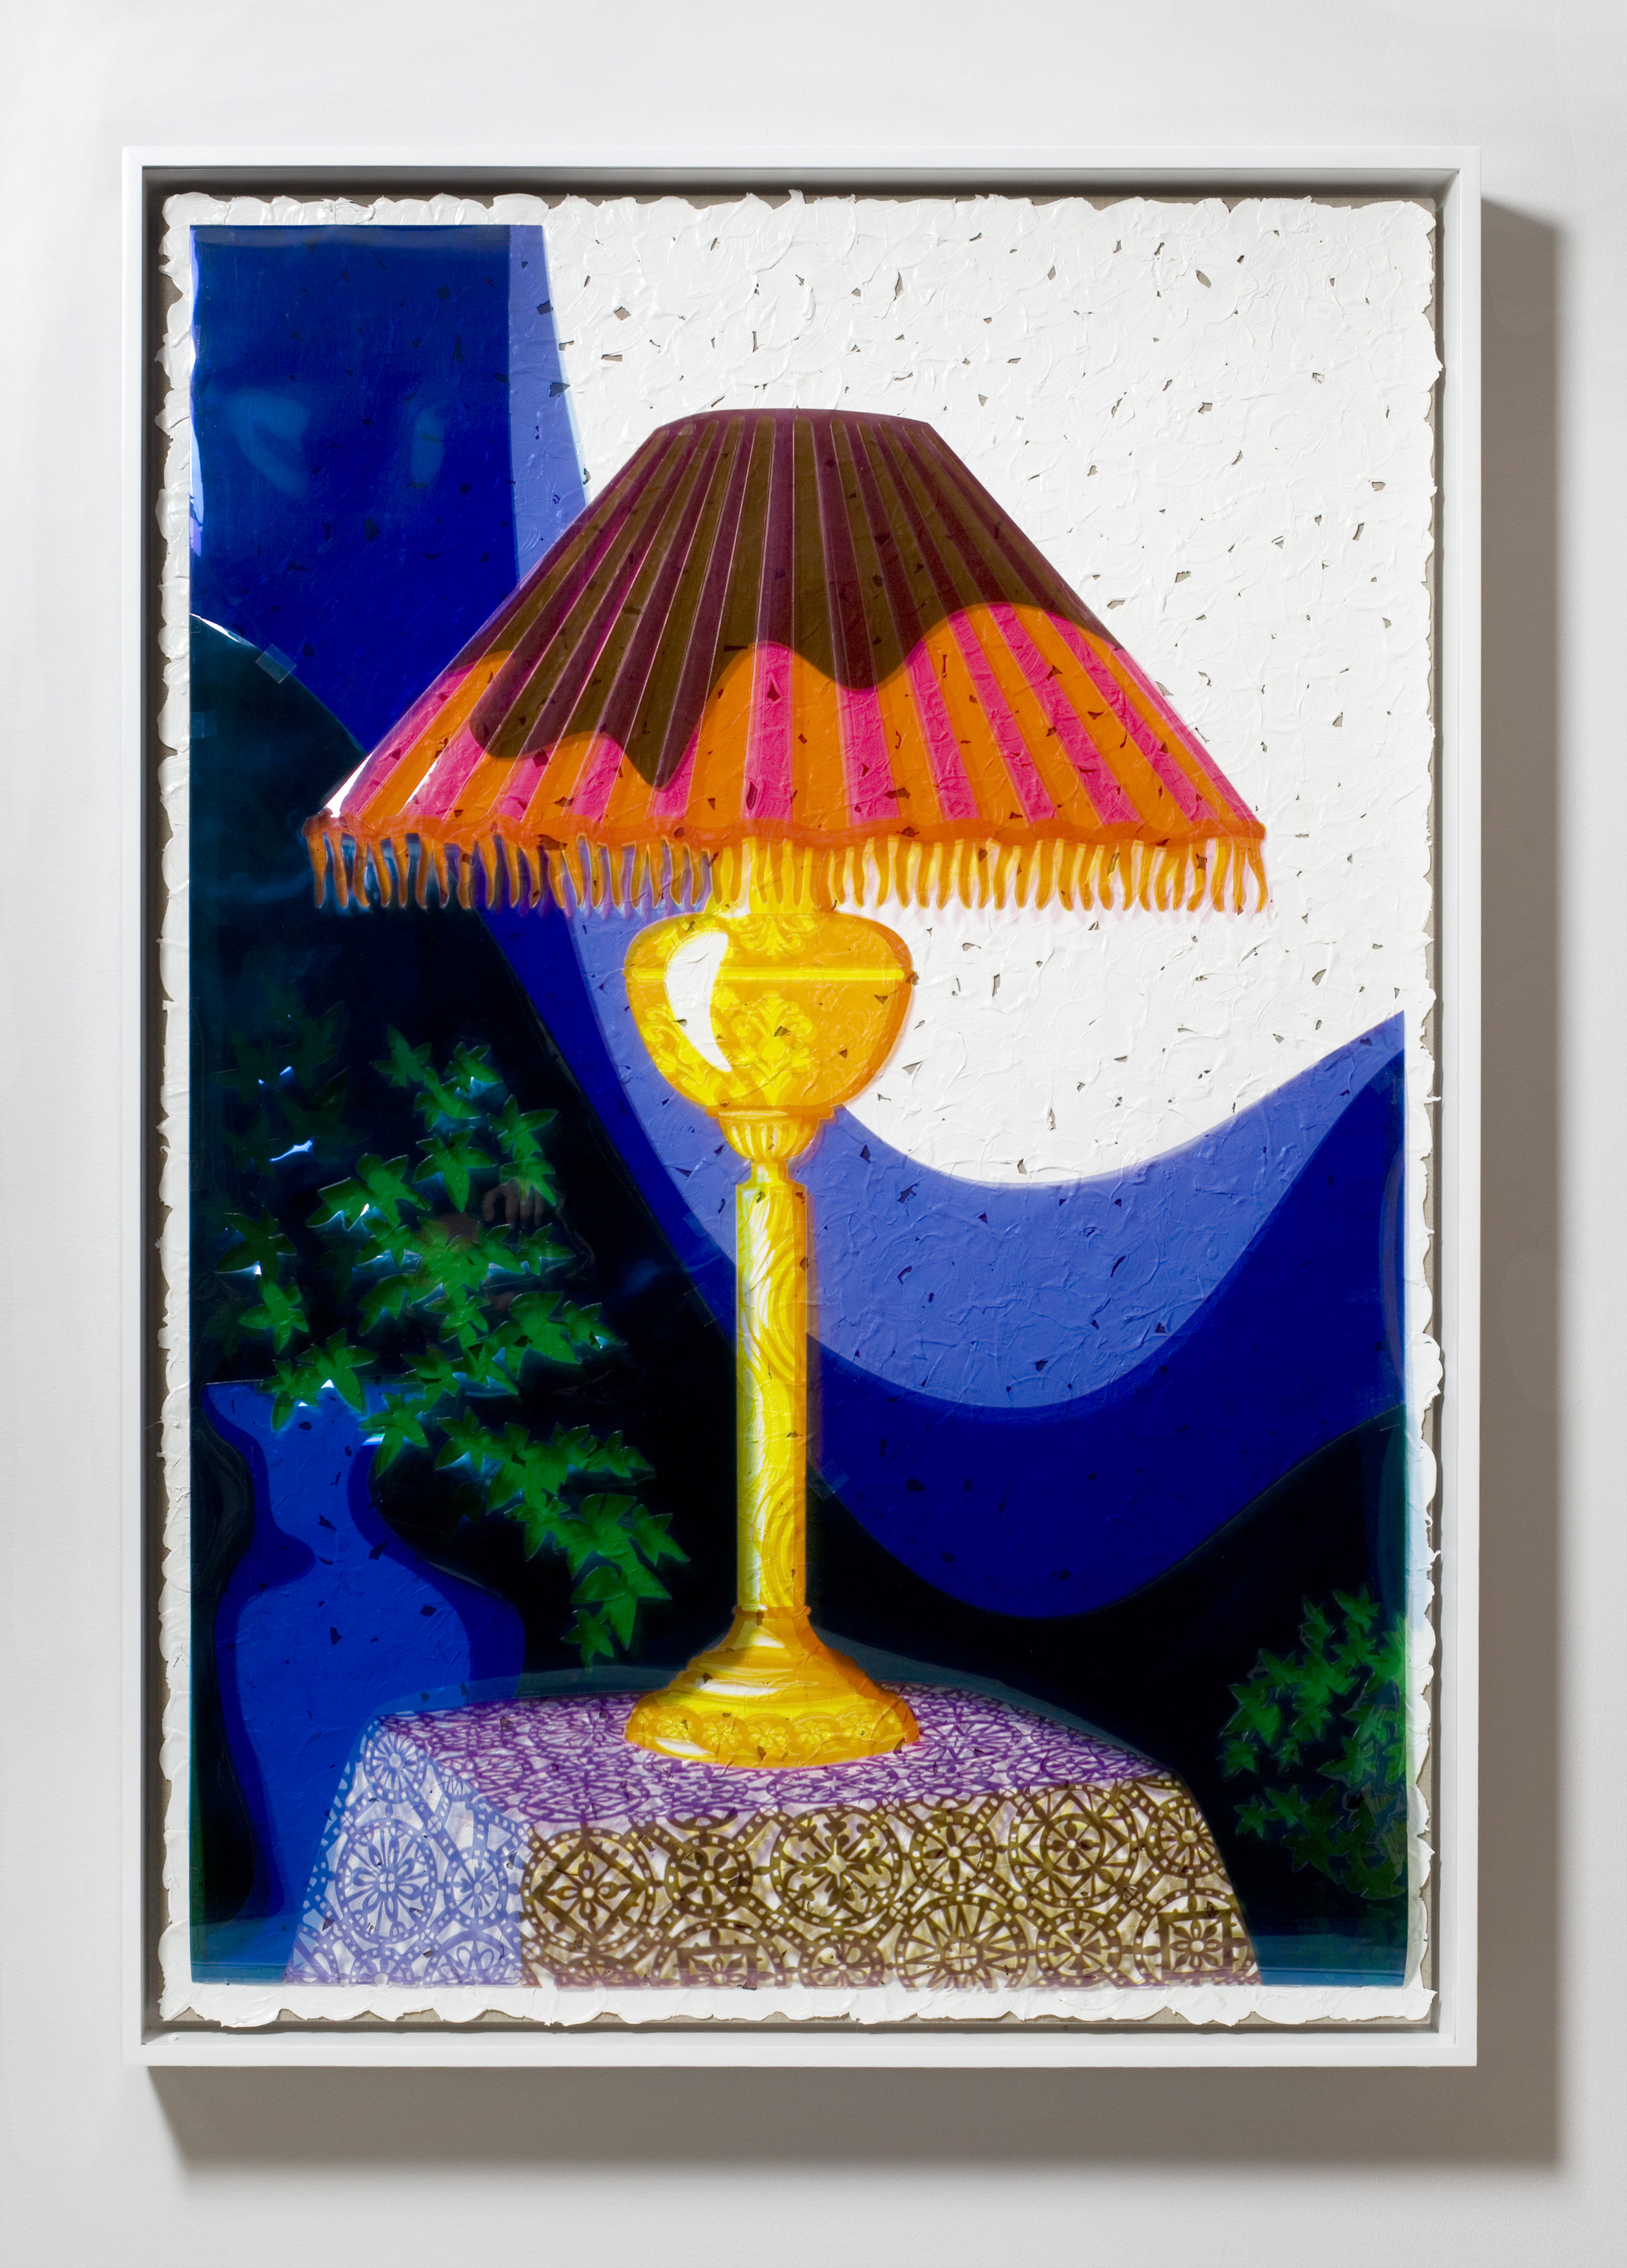 Overlay Series: Early Black and White Photograph (Cabiner-card Portrait of a Table Lamp by Cummins of Auburn Studio, c. 1890); Color Acetate Red, Yellow and Blue; Brushstrokes; and Linen Canvas on Stretcher Bars., 2008 red, yellow and blue film gels and acrylic on linen canvas 140 x 95,6 cm - 55 1/8 x 37 5/8 inches